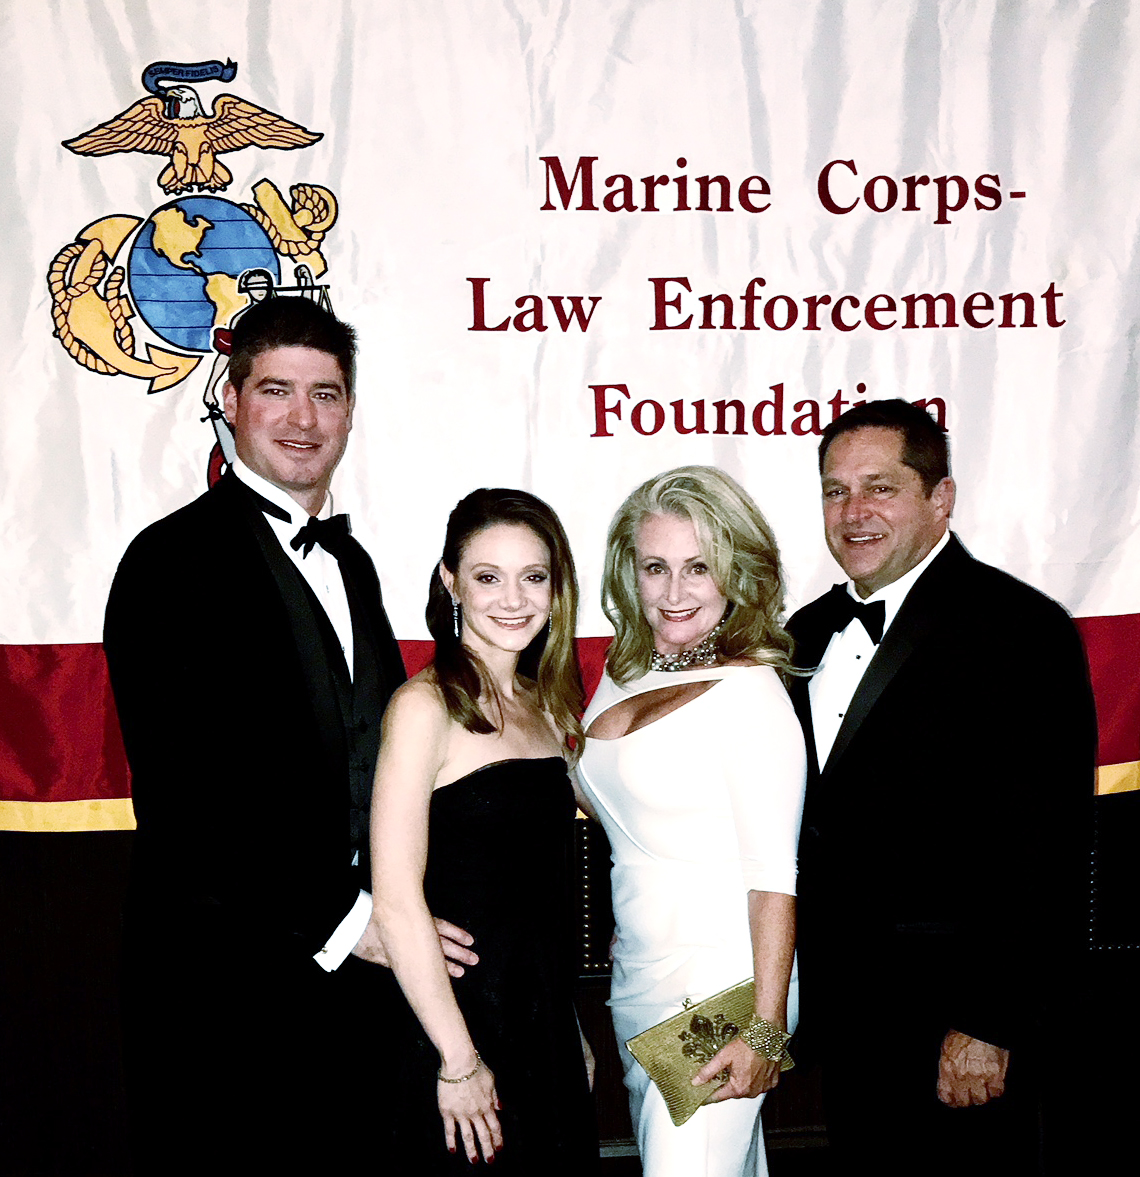 The Marine Corps Code of Ethics